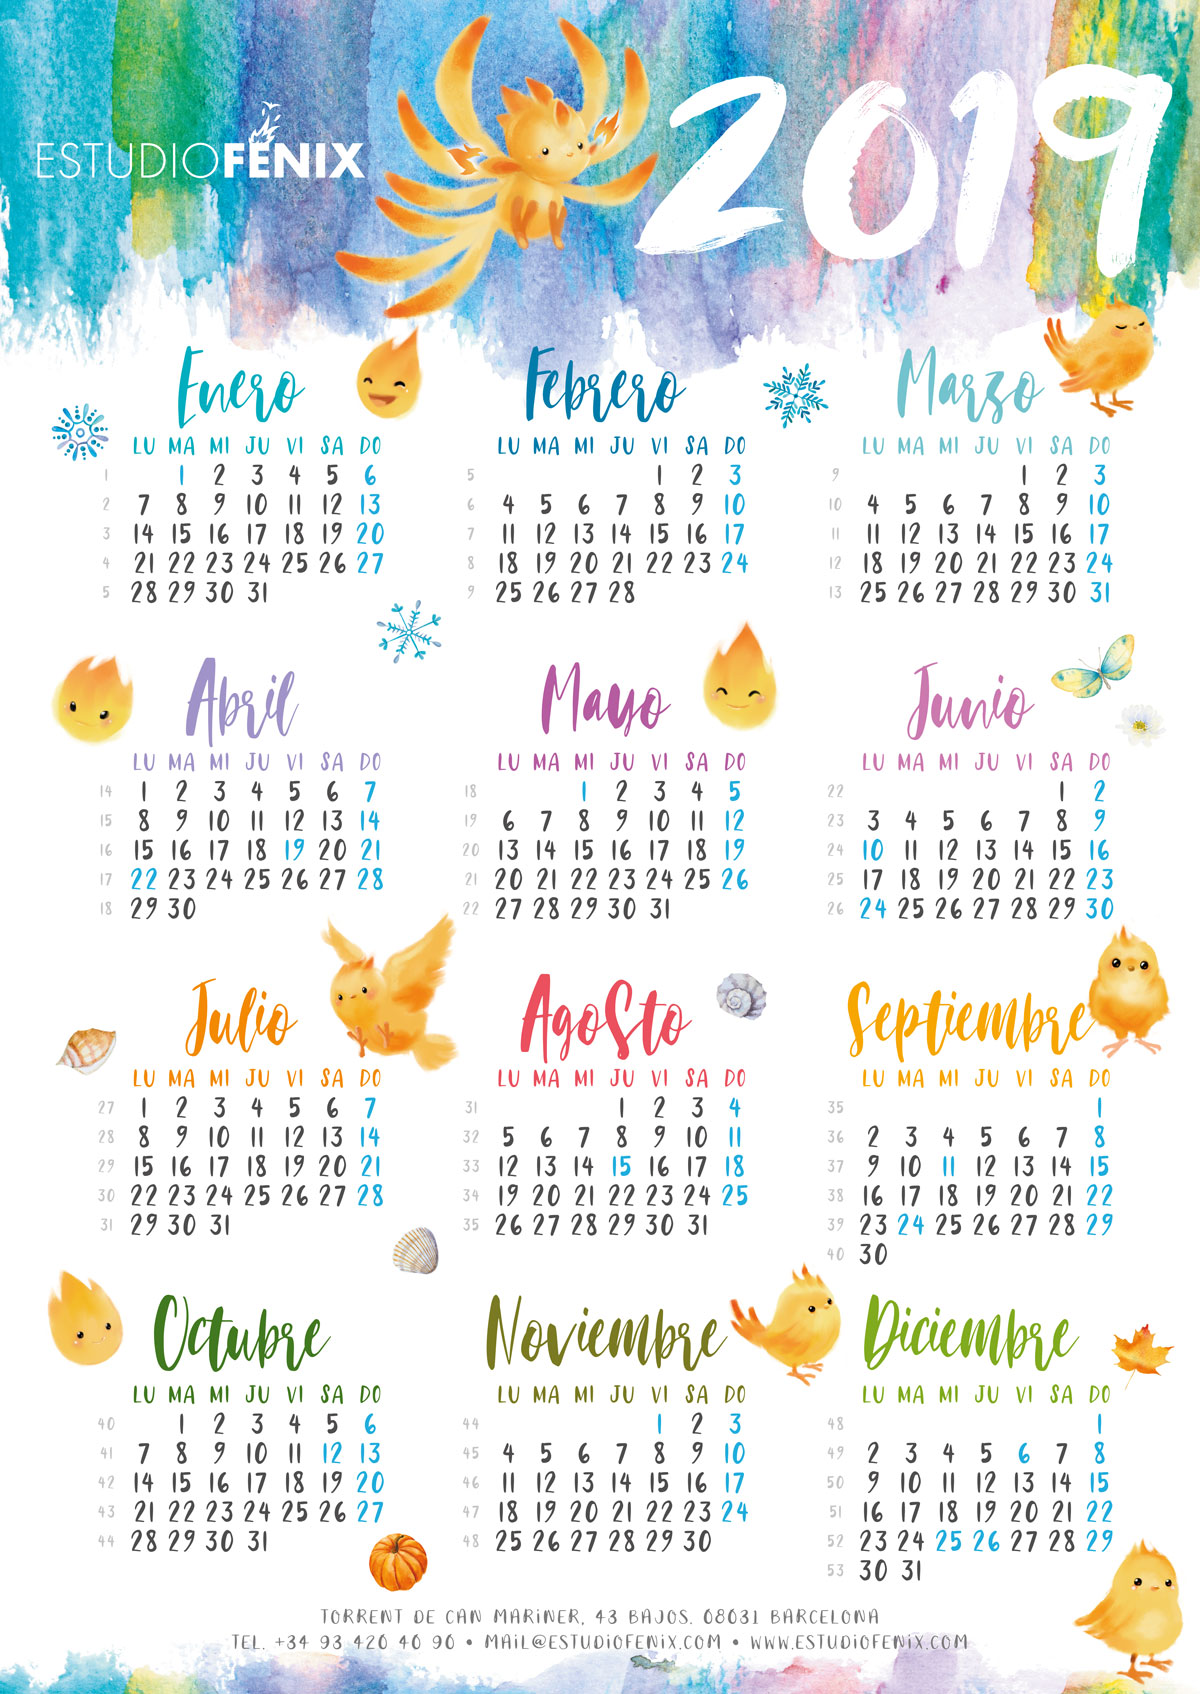 Calendario-CAST-2019-Fénix-pared_small.jpg